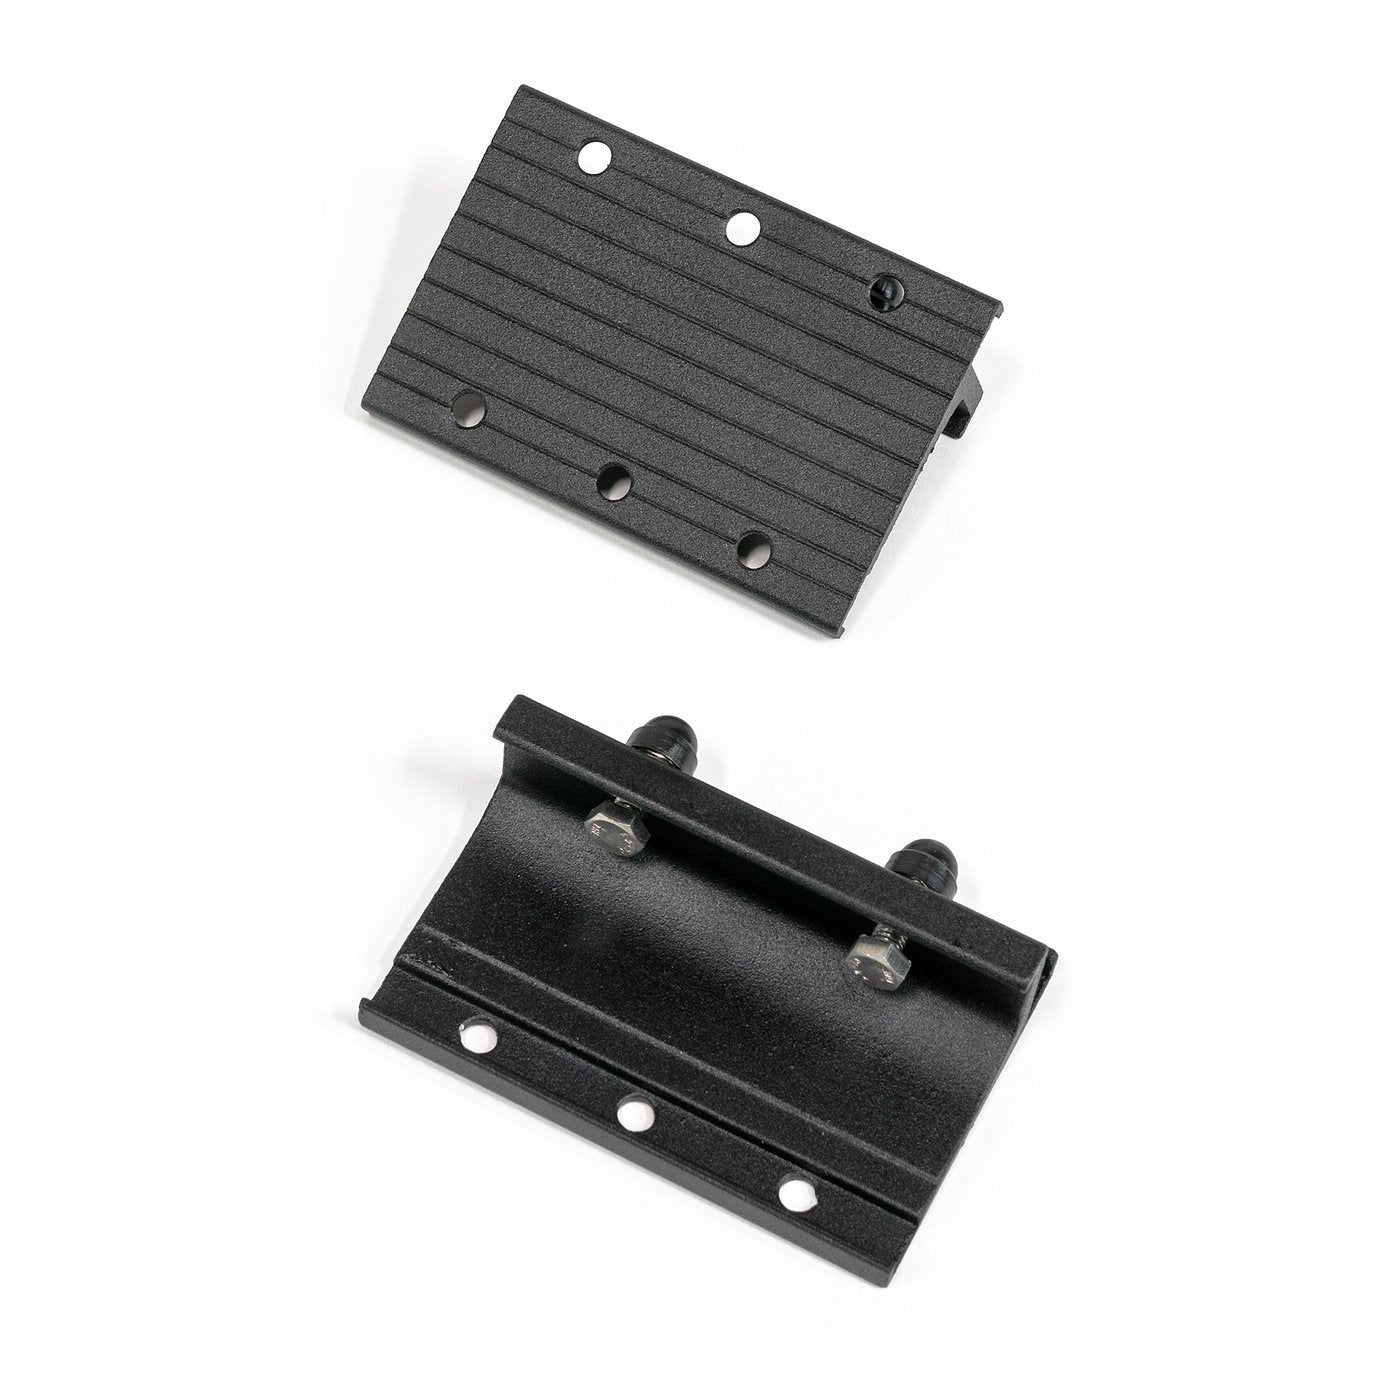 Eezi-Awn K9 Accessory Adapter Set